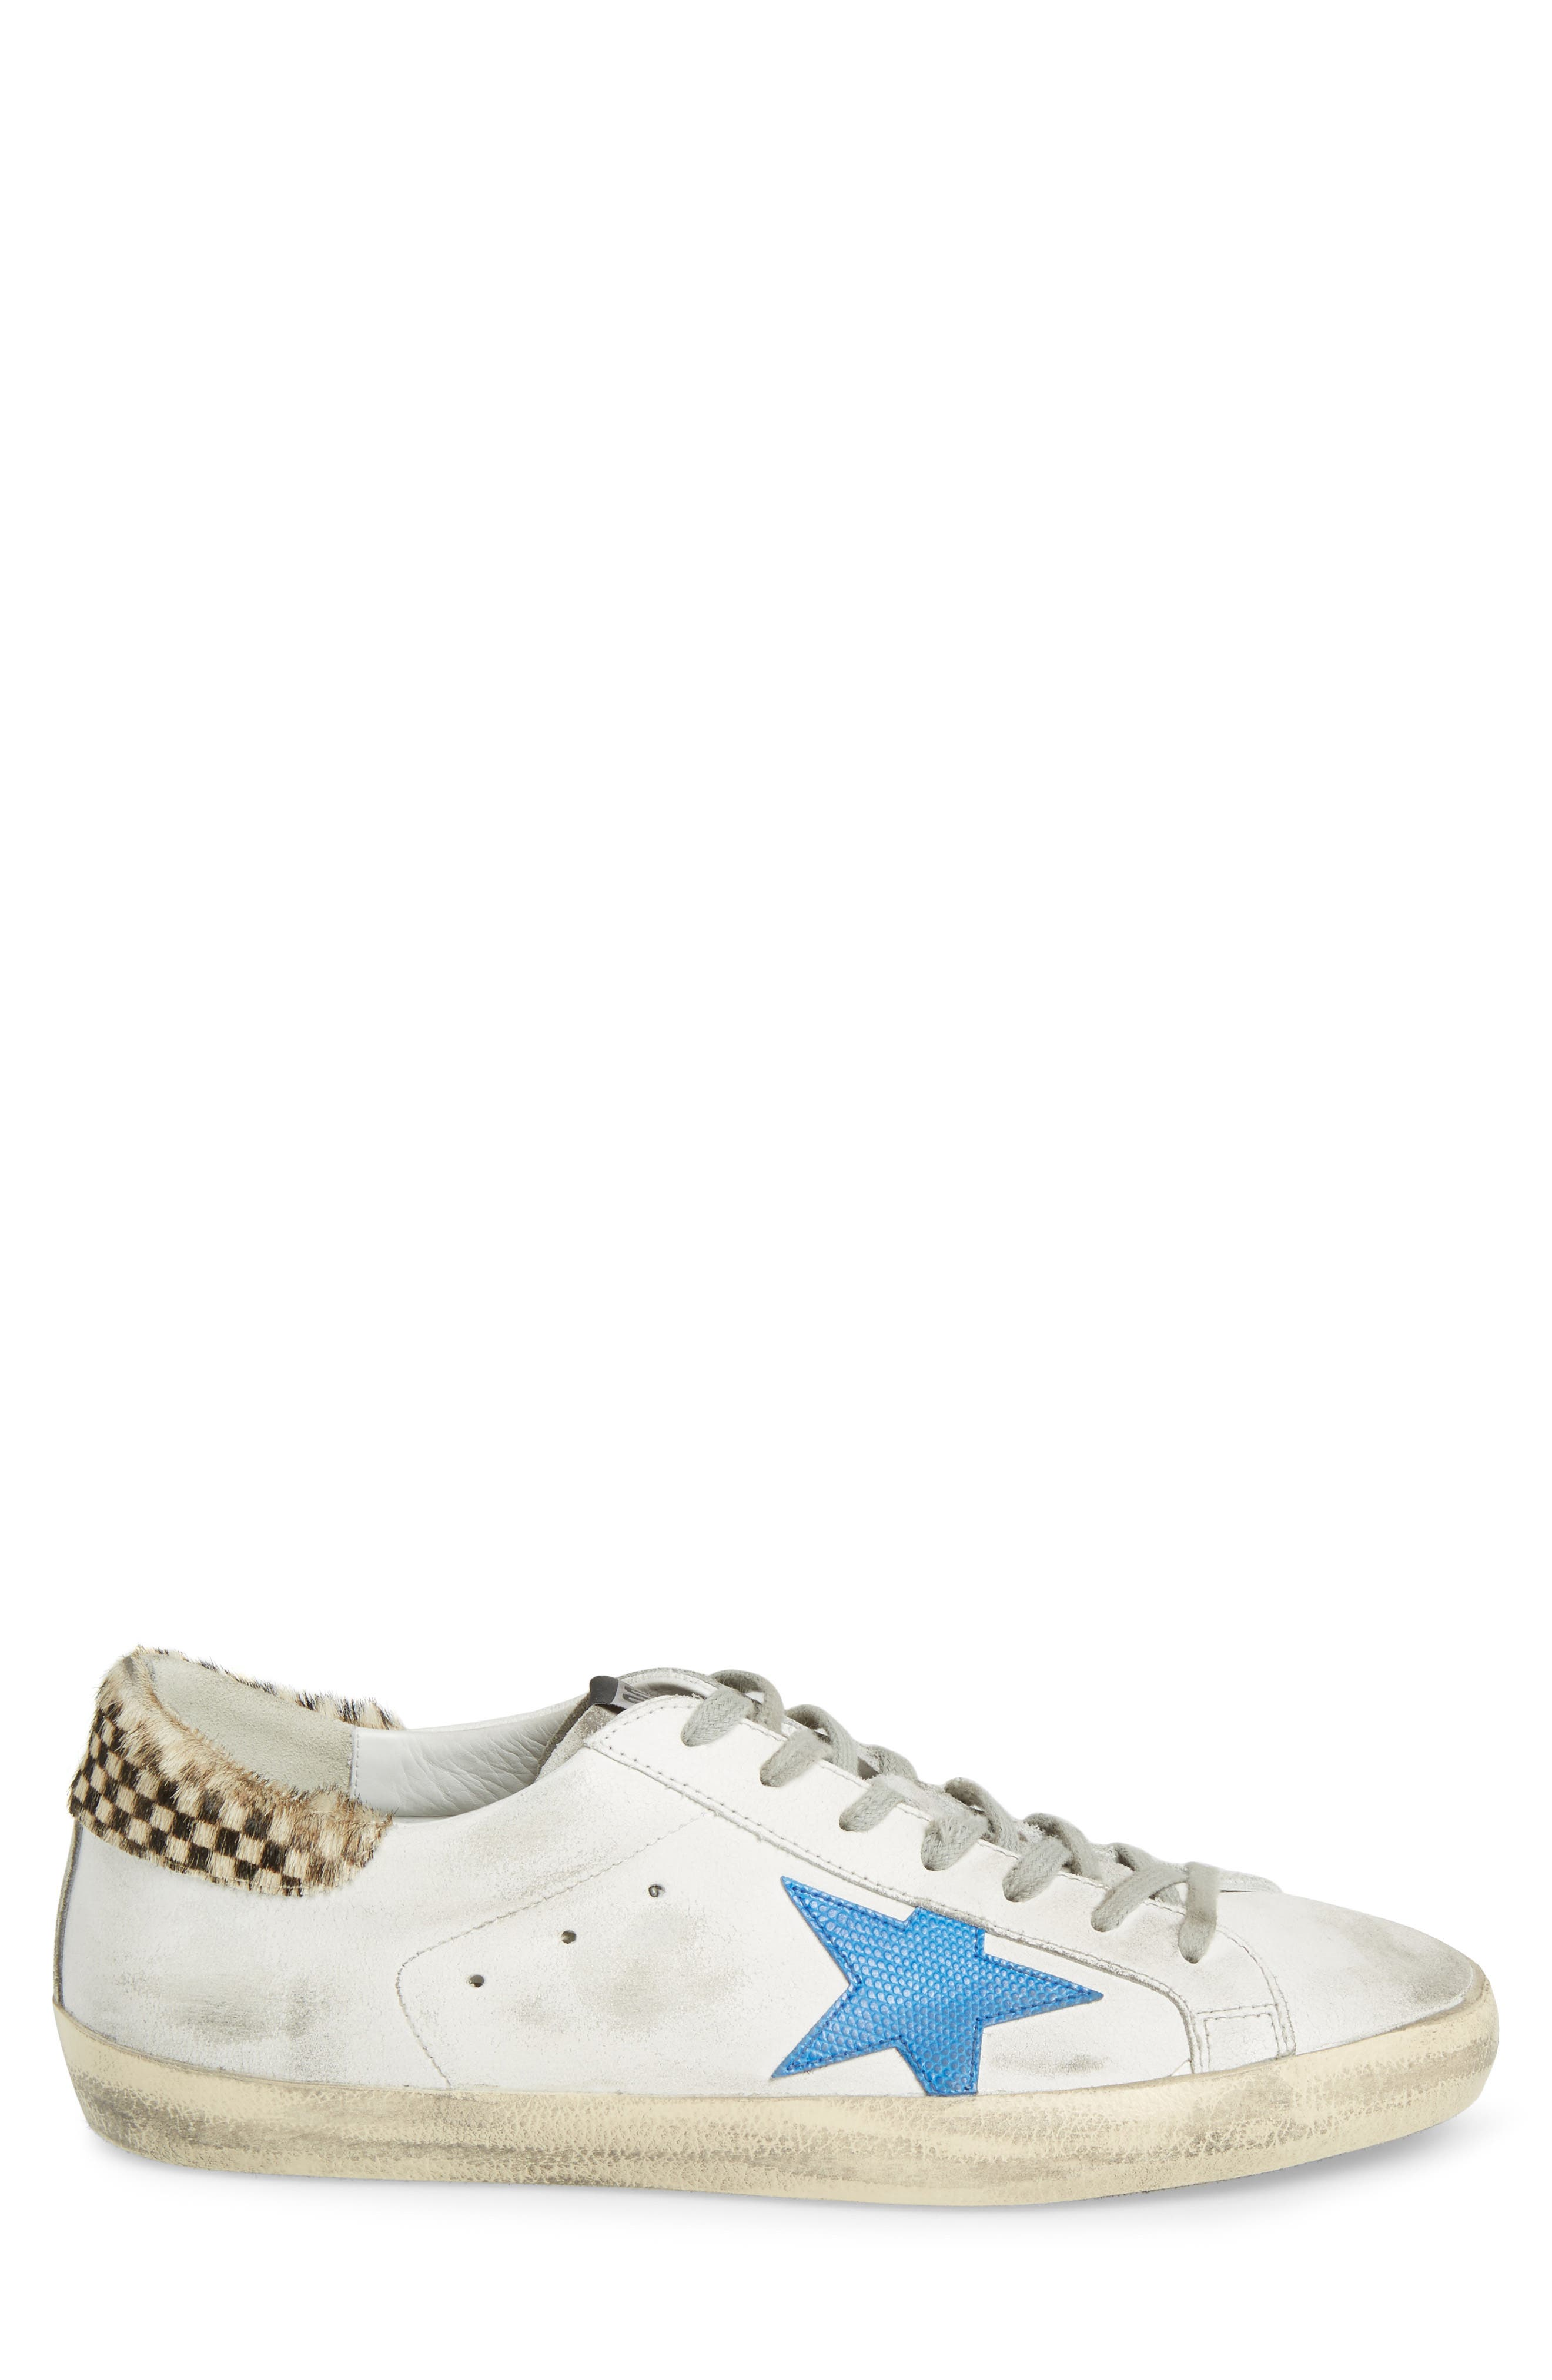 Superstar Sneaker with Genuine Calf Hair Trim,                             Alternate thumbnail 3, color,                             White/ Check/ Lizard Print